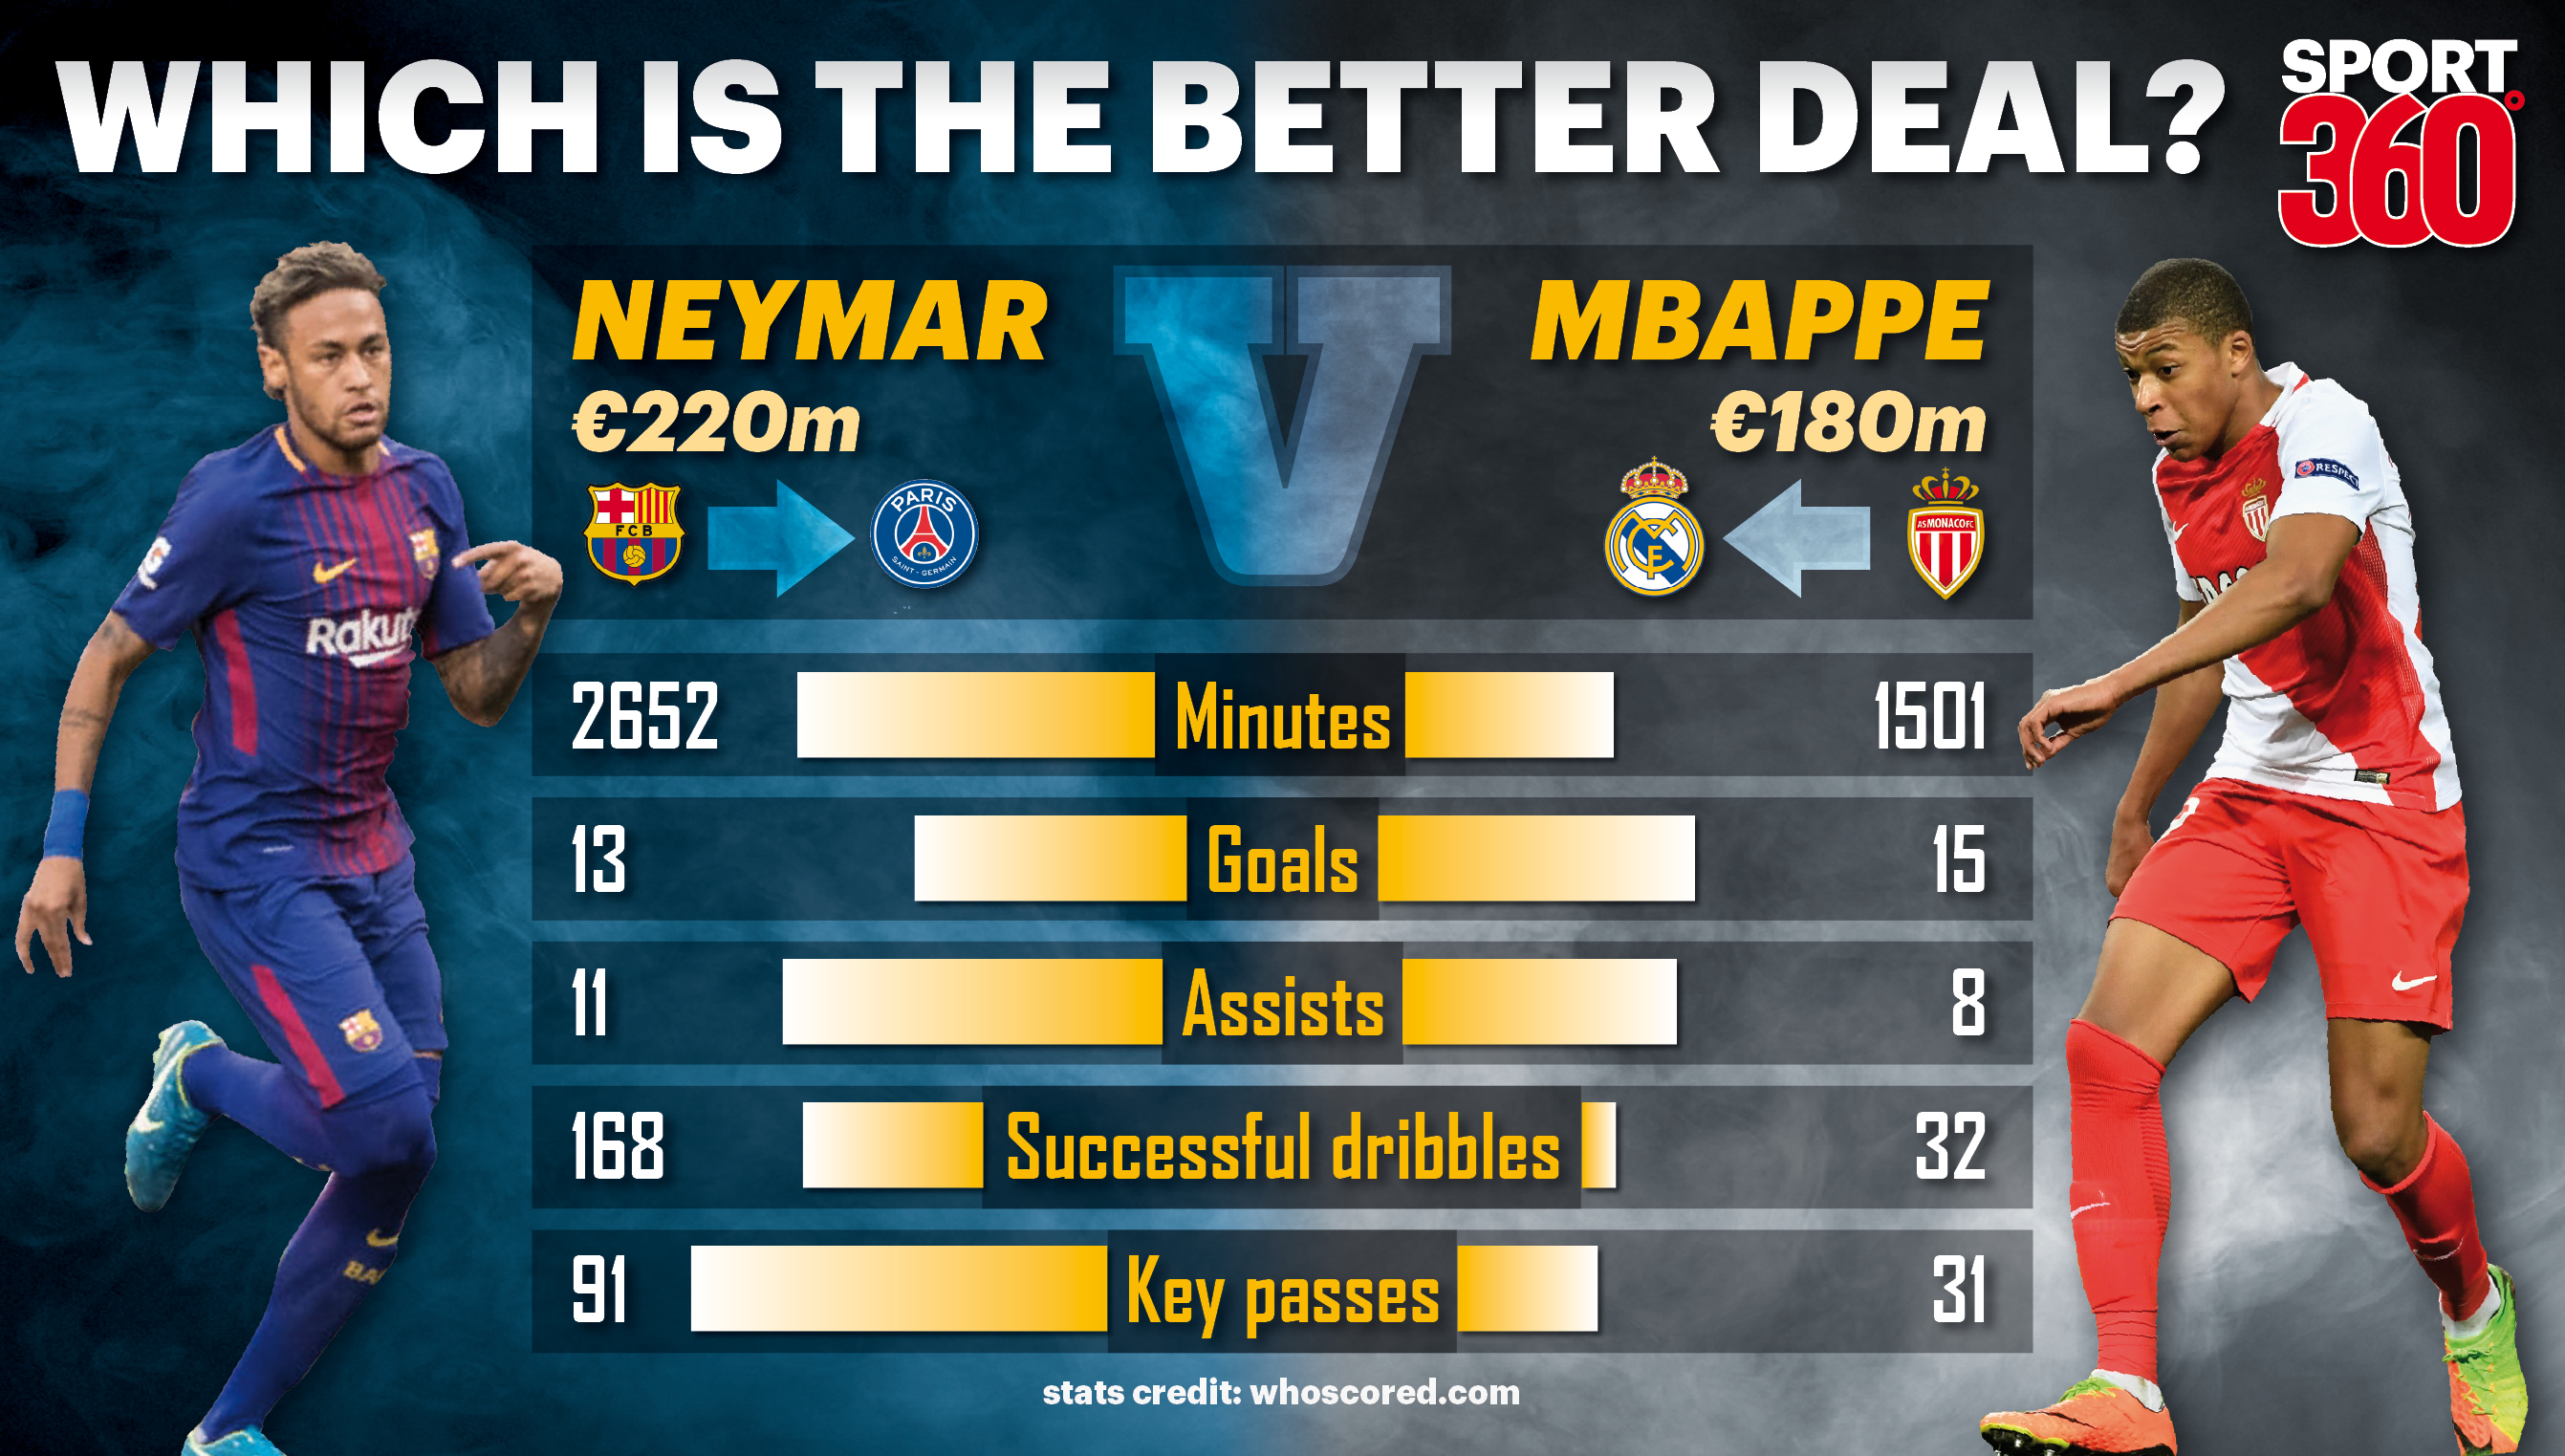 Kylian Mbappe to Real Madrid for €180m and Neymar to PSG